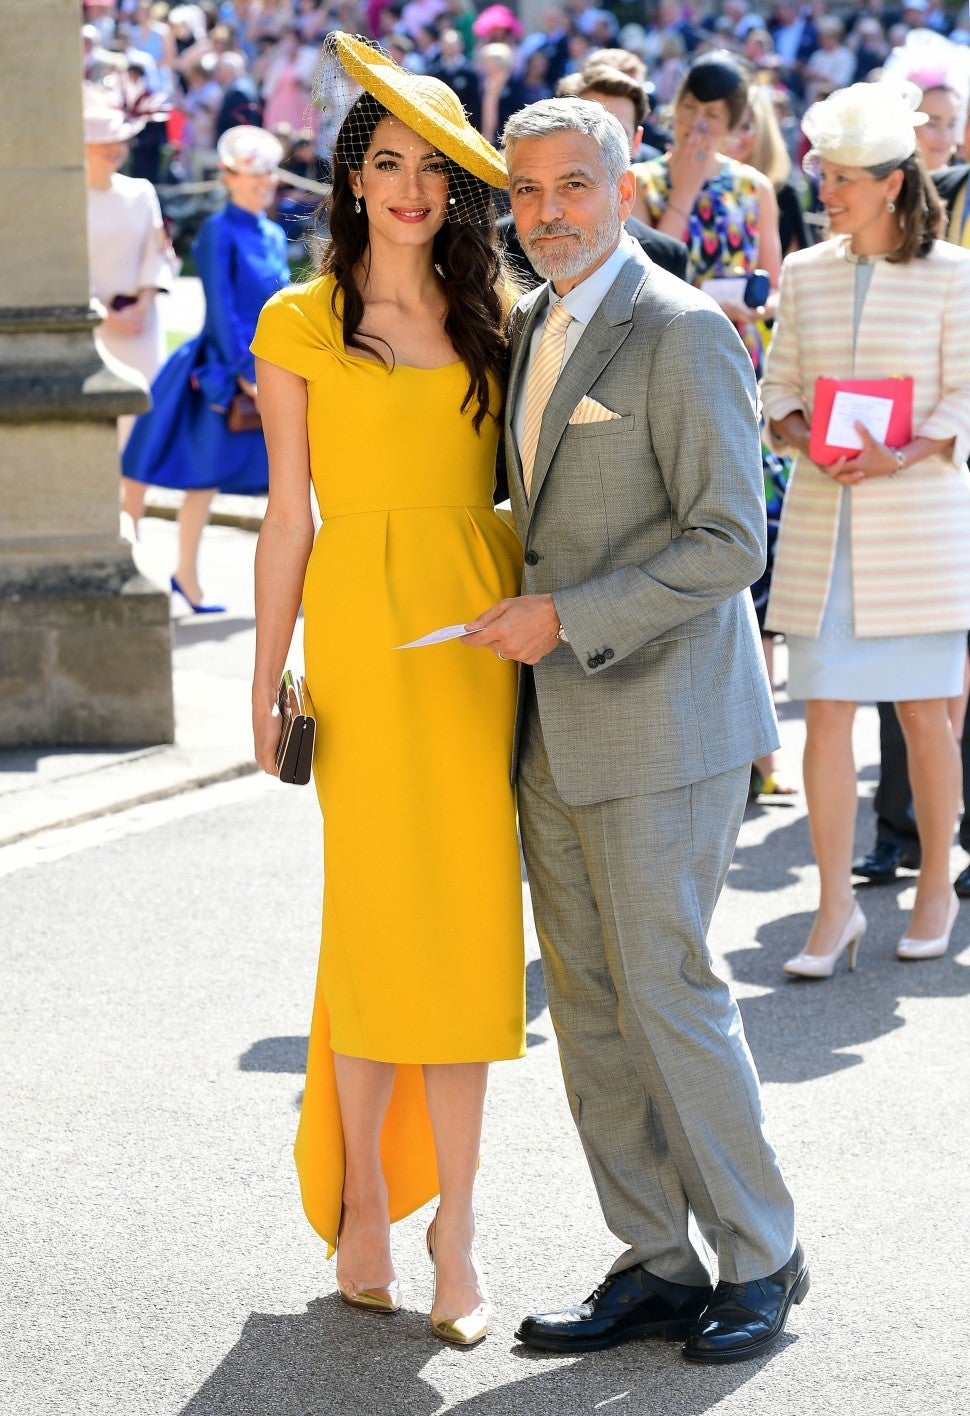 Amal Clooney in yellow dress at royal wedding